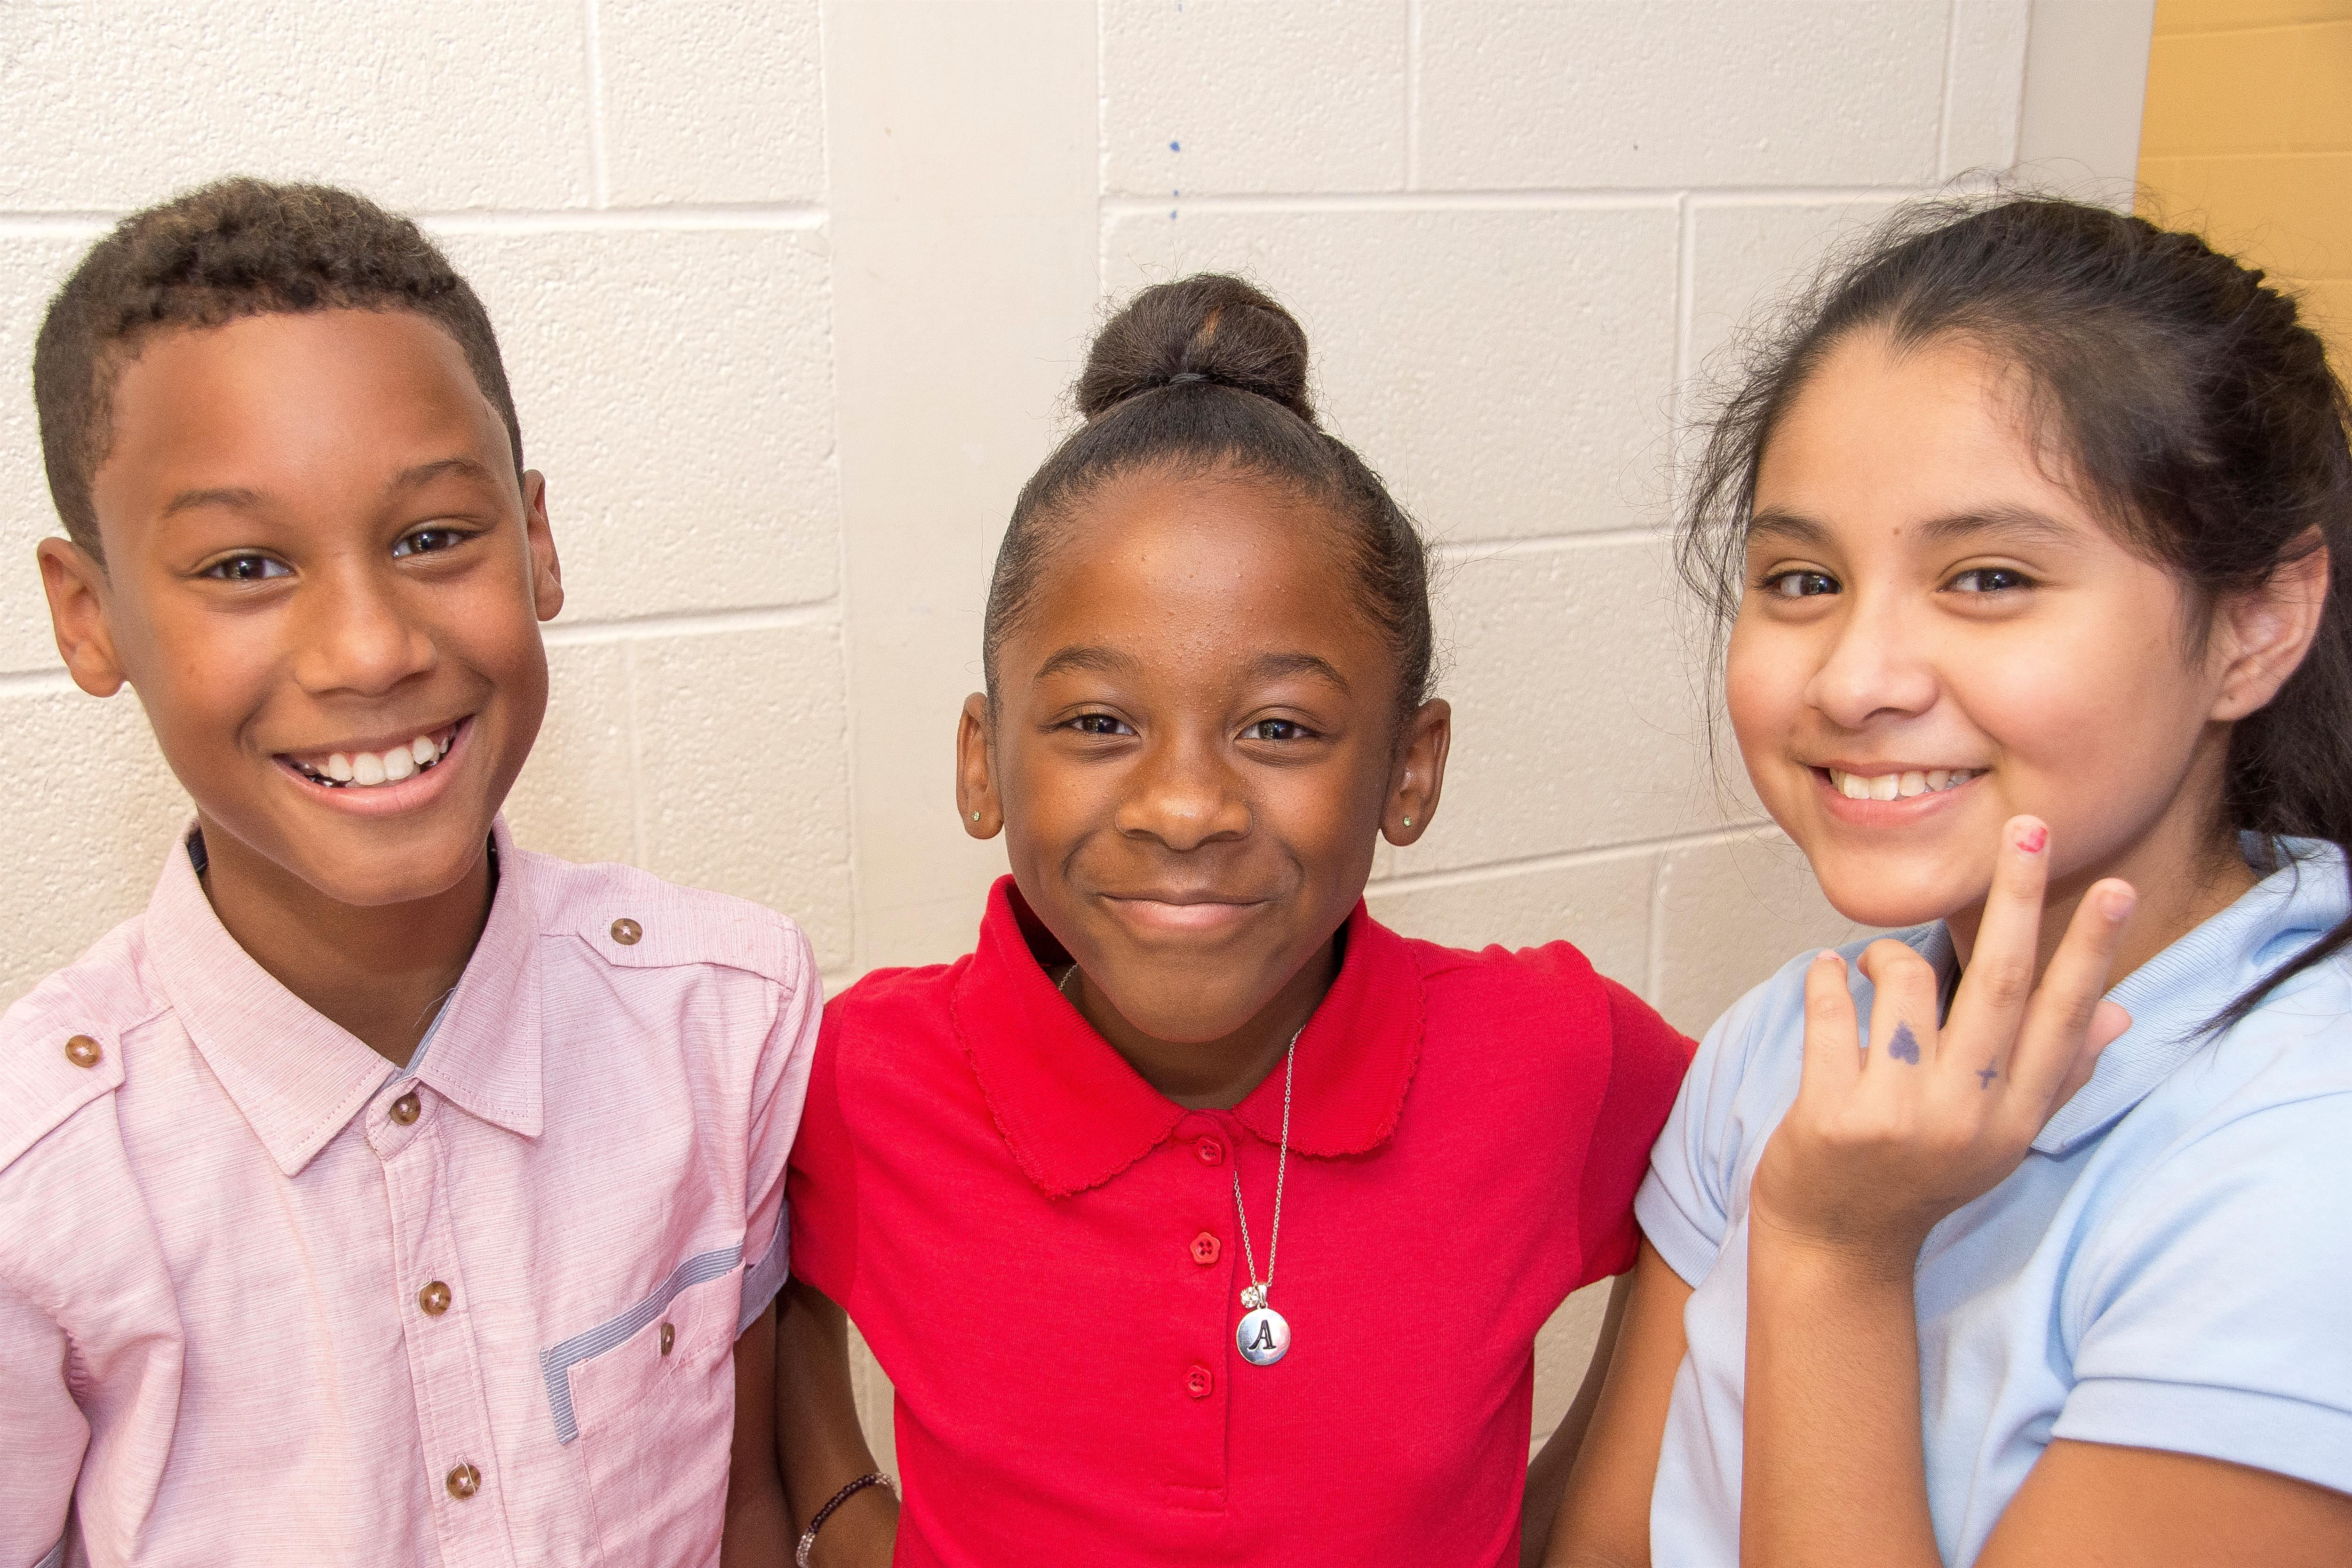 three students smiling